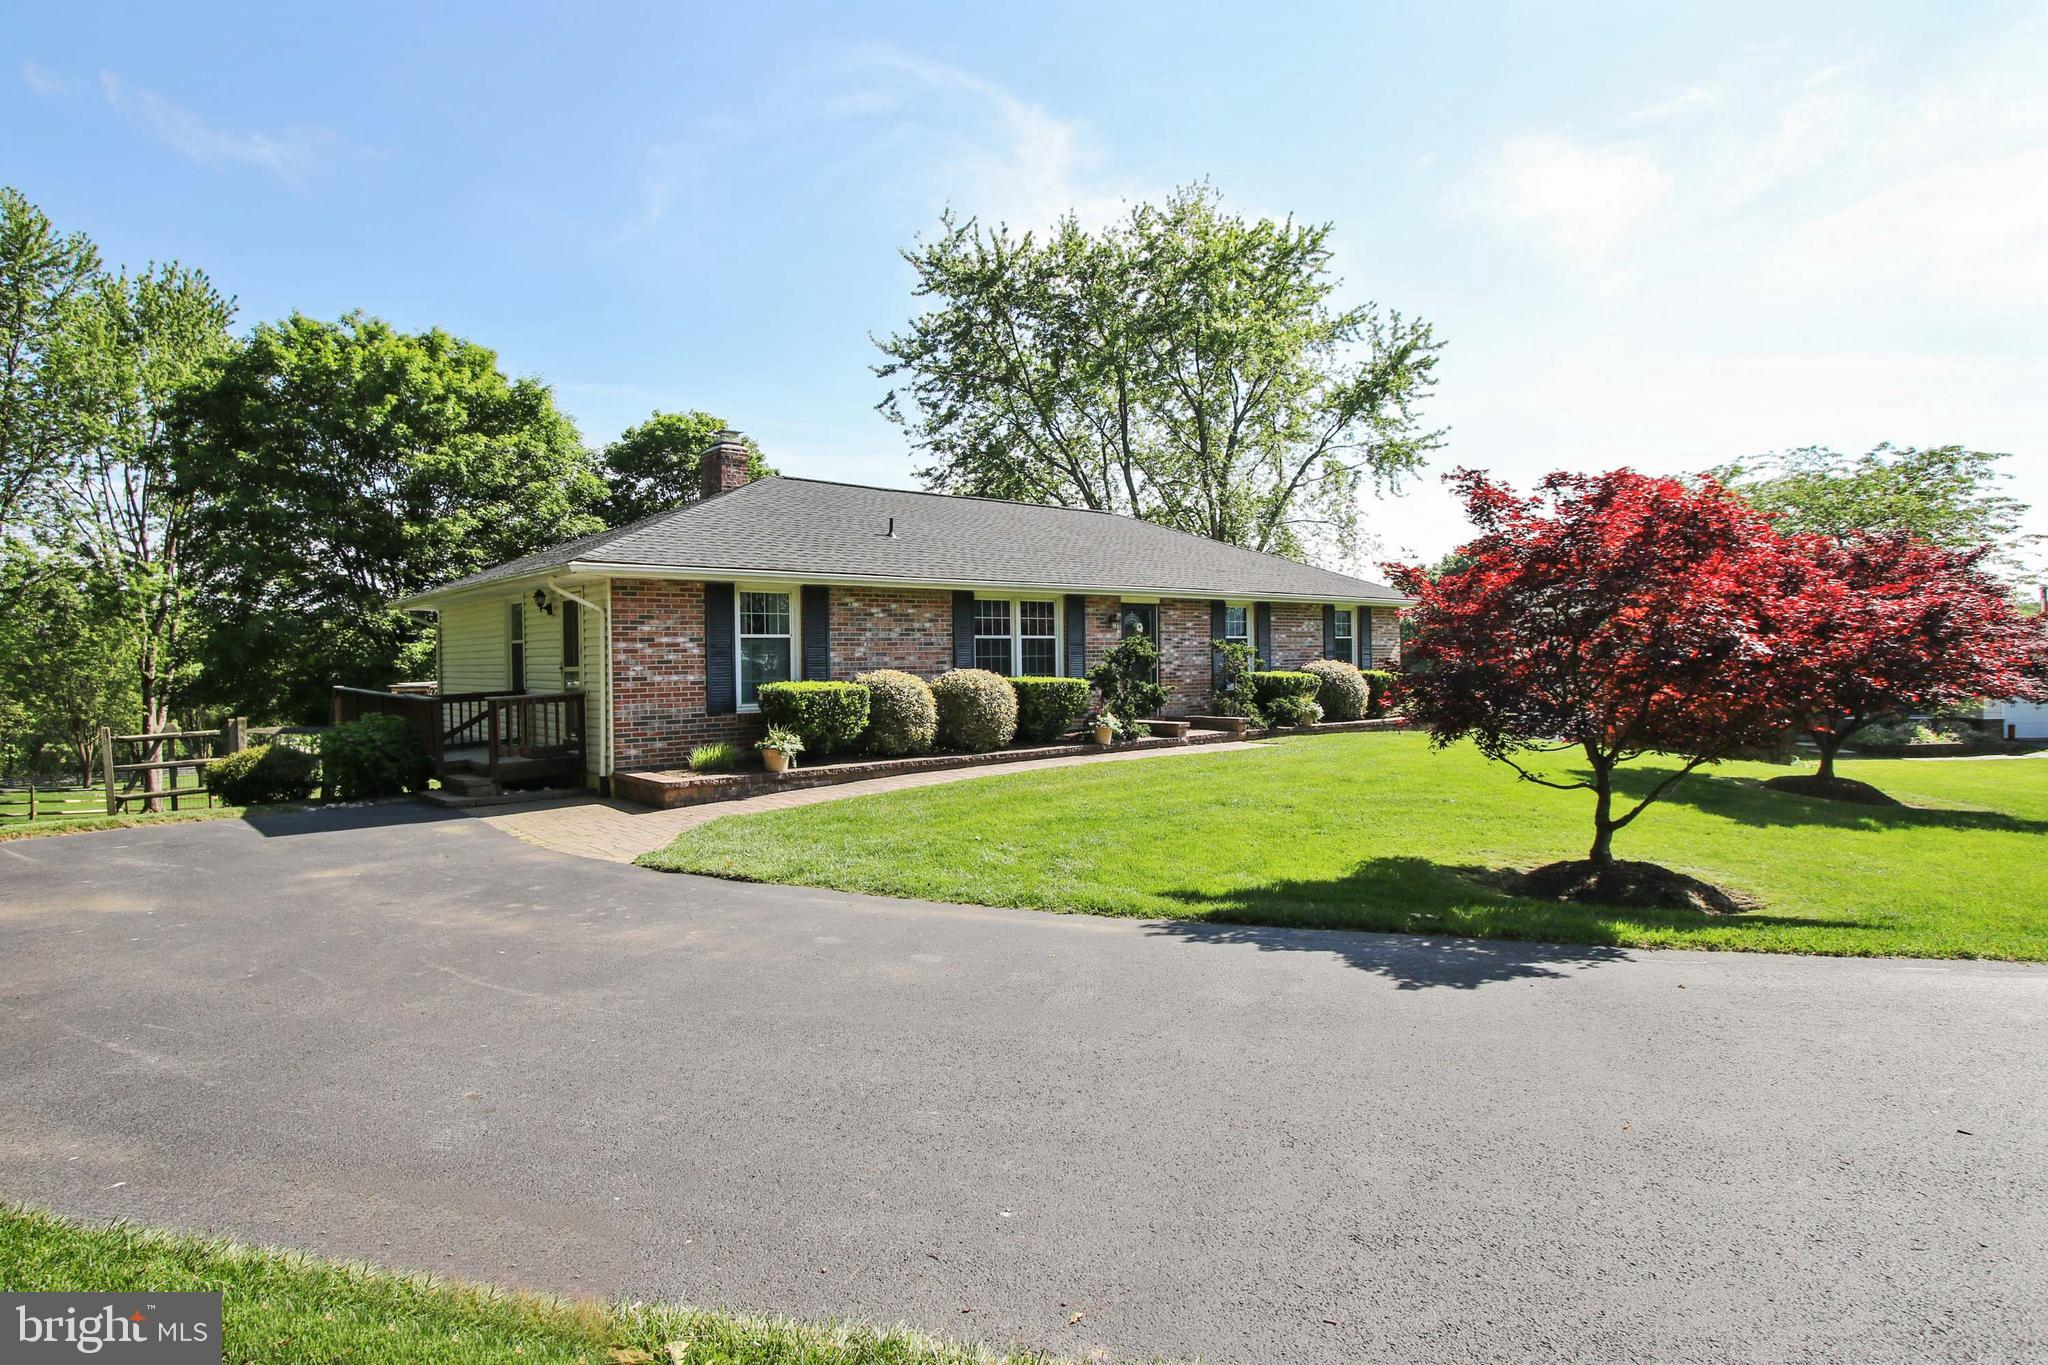 With too many updates to list this beautifully maintained home on nearly 1 acre of flat ground is mo